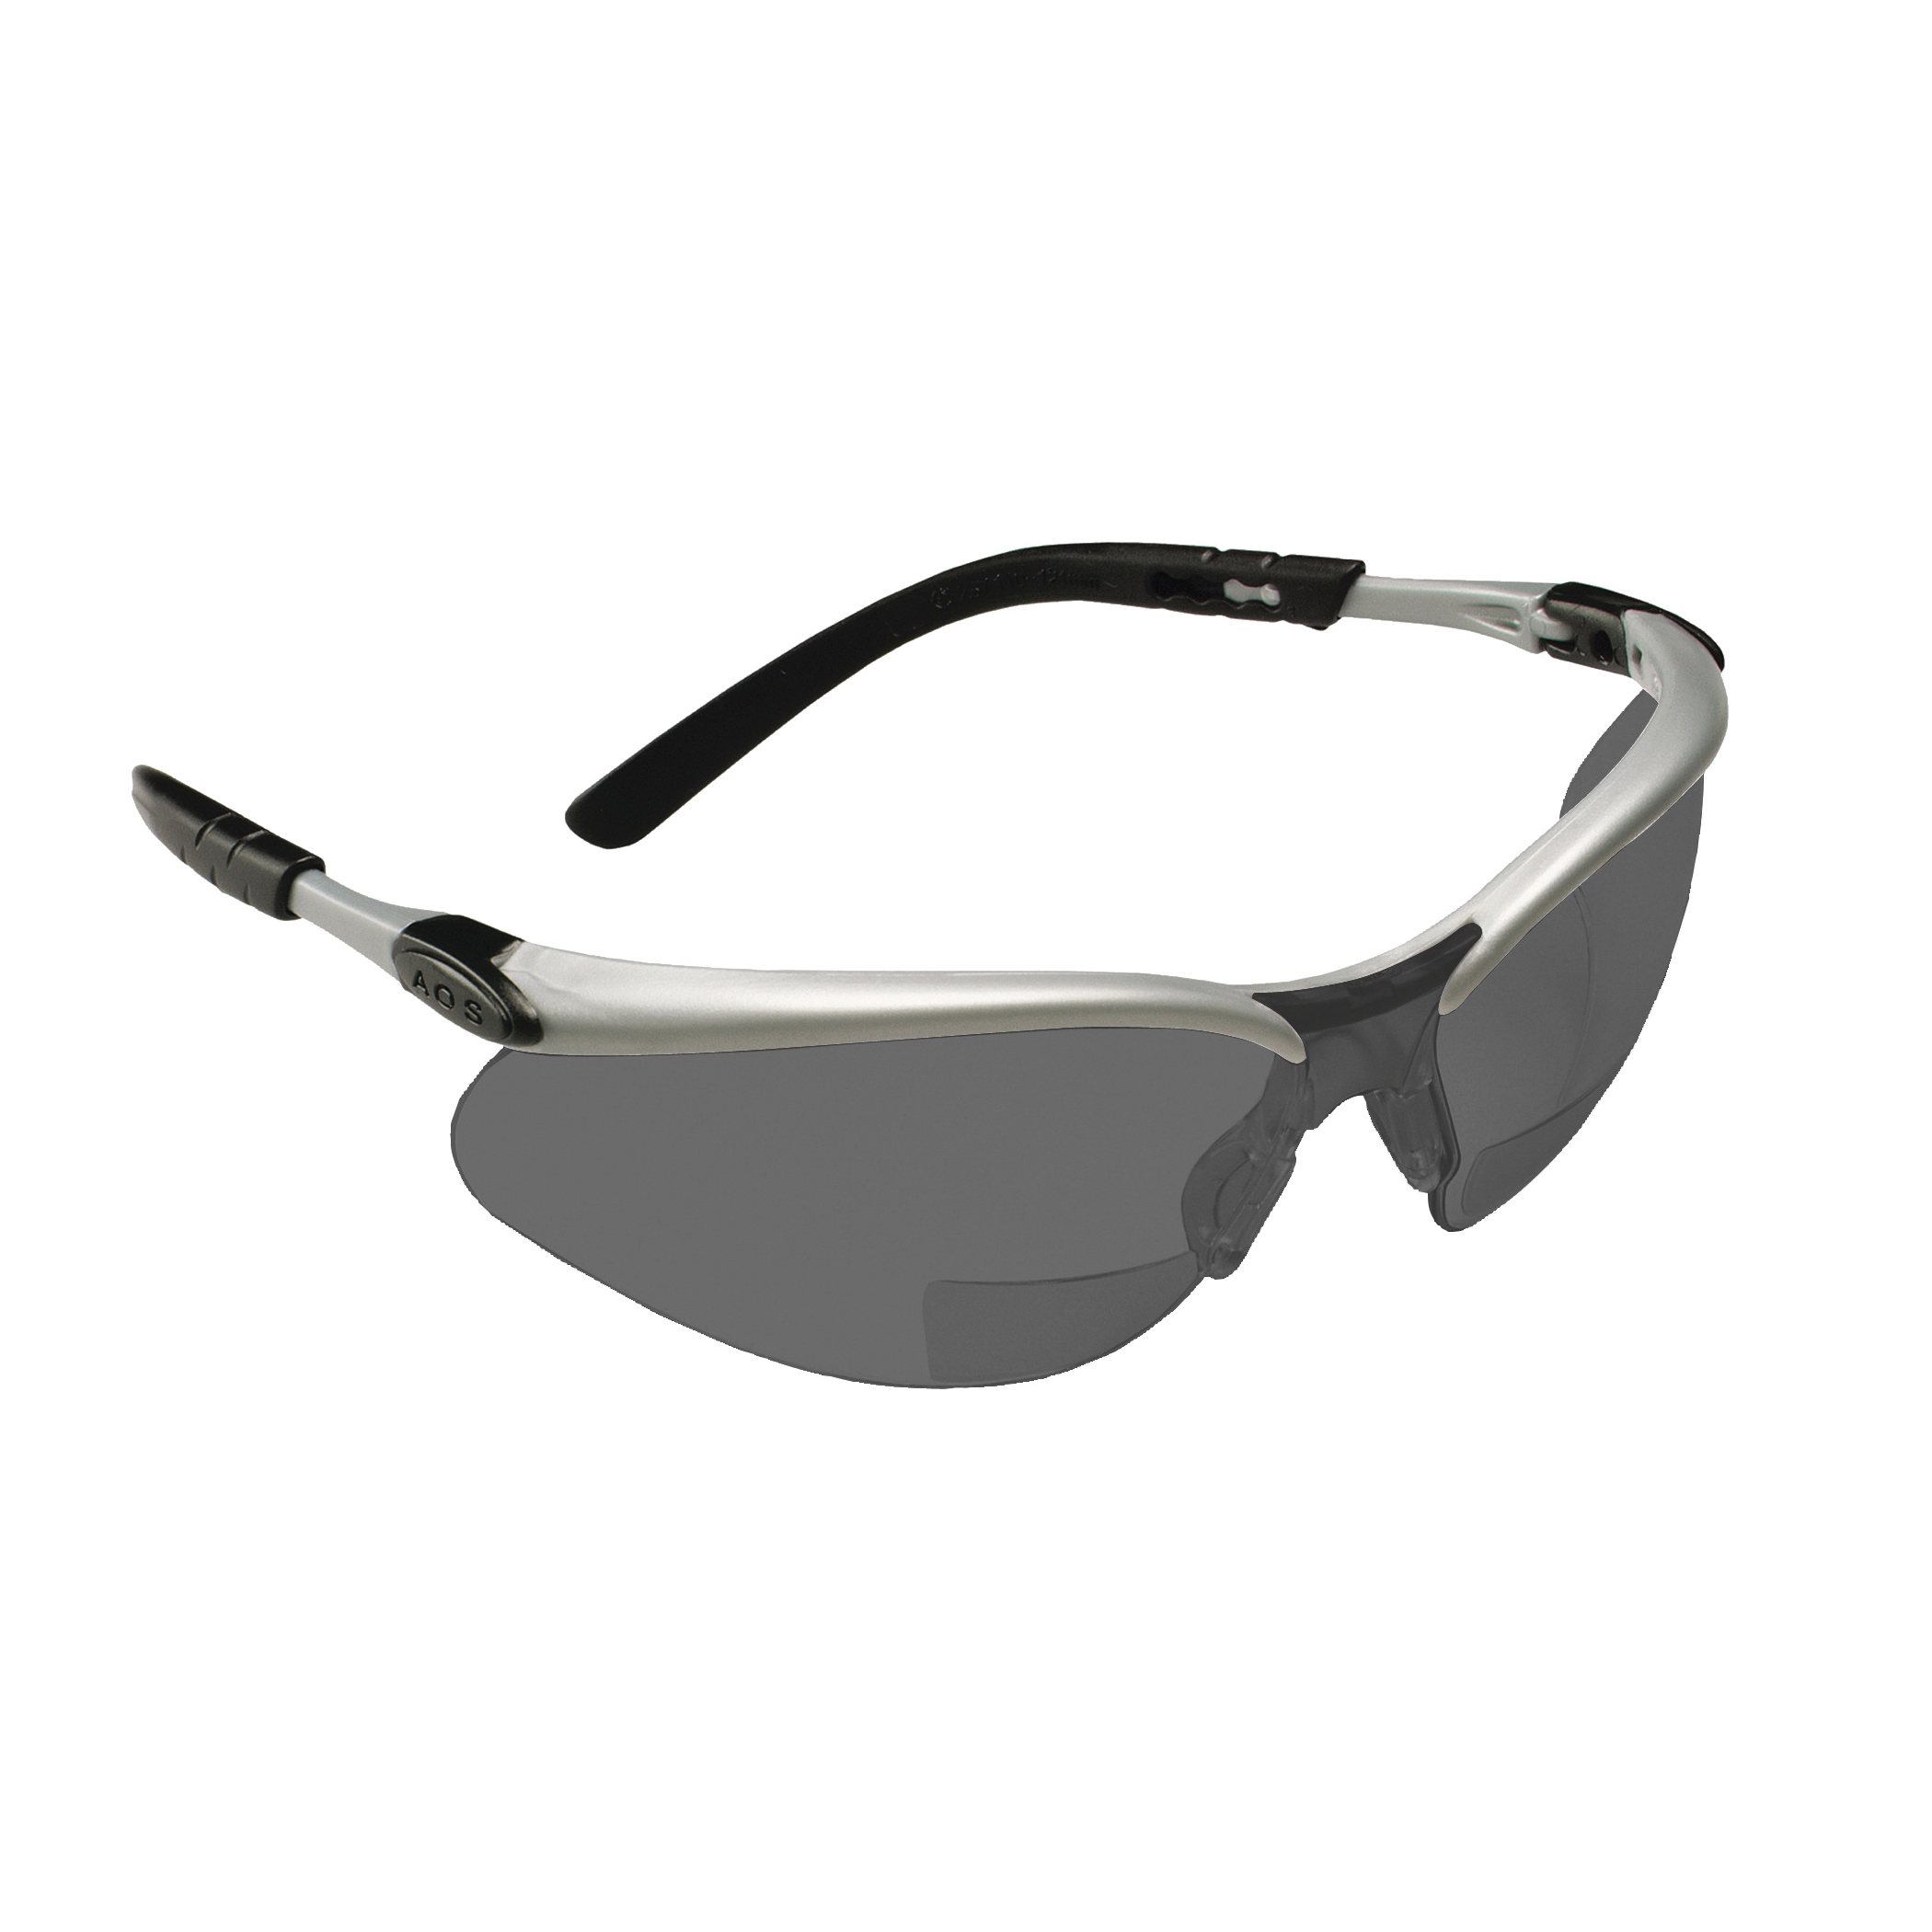 3M™ BX™ 078371-62049 11377-00000-20 Bi-Focal Lens Lightweight Reader Protective Eyewear, 1.5 Diopter, Gray Lens, Black/Silver Plastic Frame, Polycarbonate Lens, 99.9% UV Protection, Specifications Met: ANSI Z87.1-2015, CSA Z94.3-2007